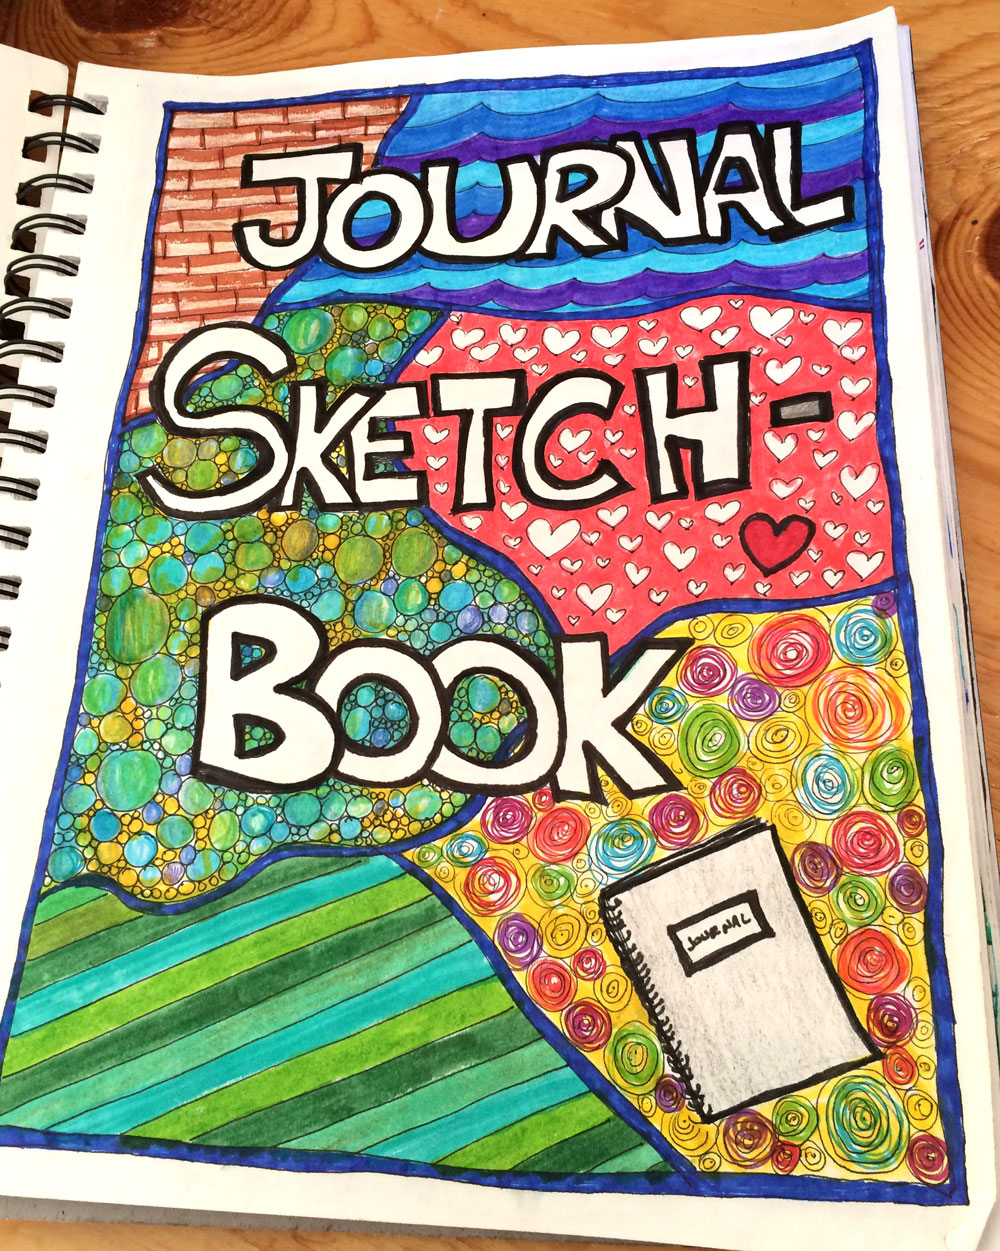 My journal sketch book - where I doodle (in the evening) what I'm learning during my morning quiet time and reading Scripture.  (My rule is that I just go for it, no starting over, no editing, just pure creativity and using the time to meditate on what I'm learning - making it sink in deep!!)